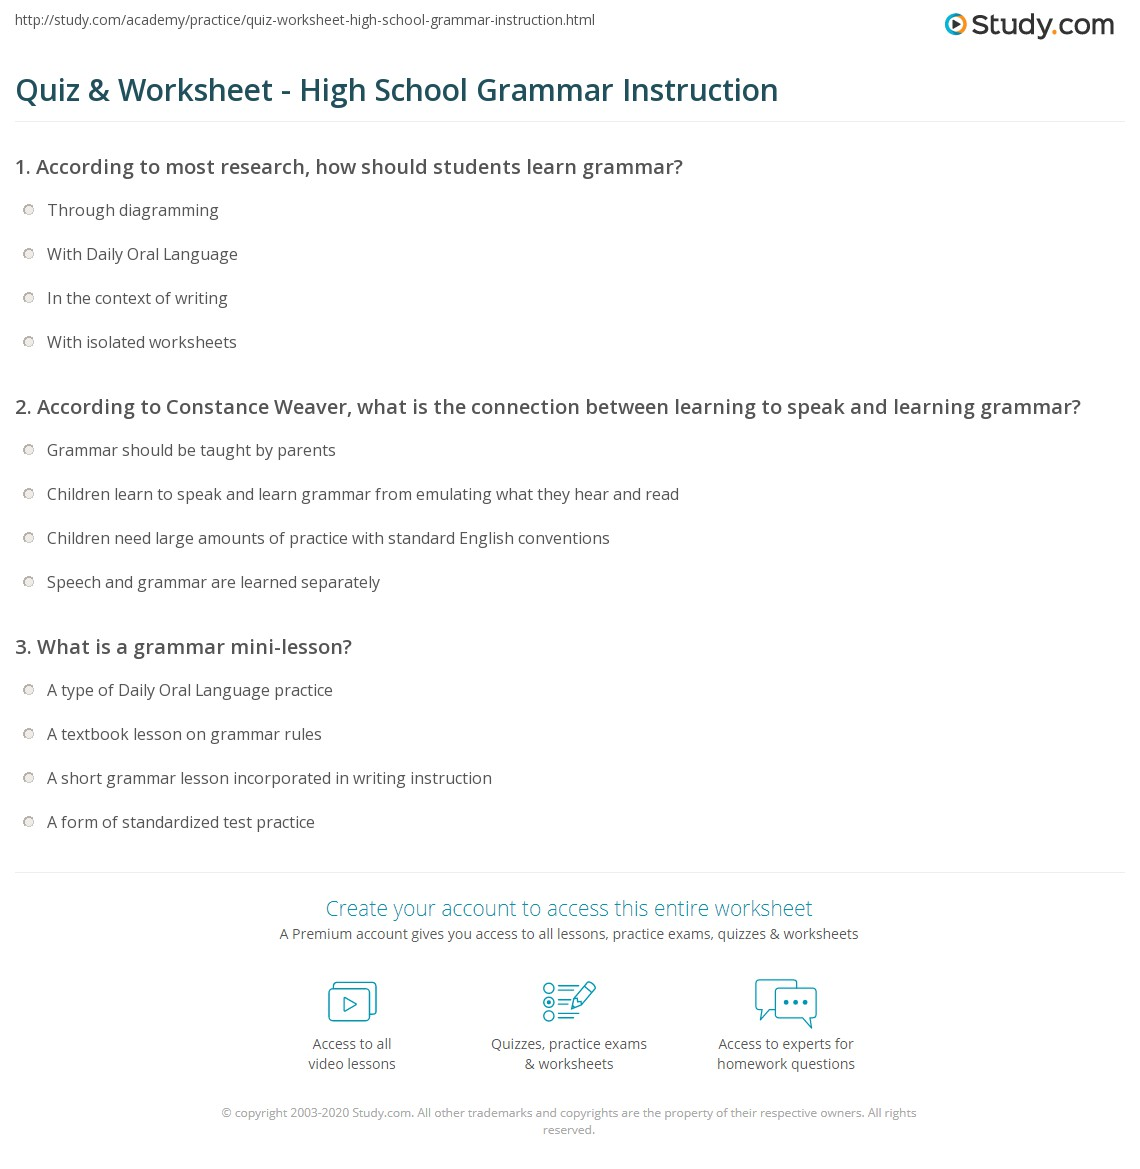 quiz worksheet high school grammar instruction. Black Bedroom Furniture Sets. Home Design Ideas